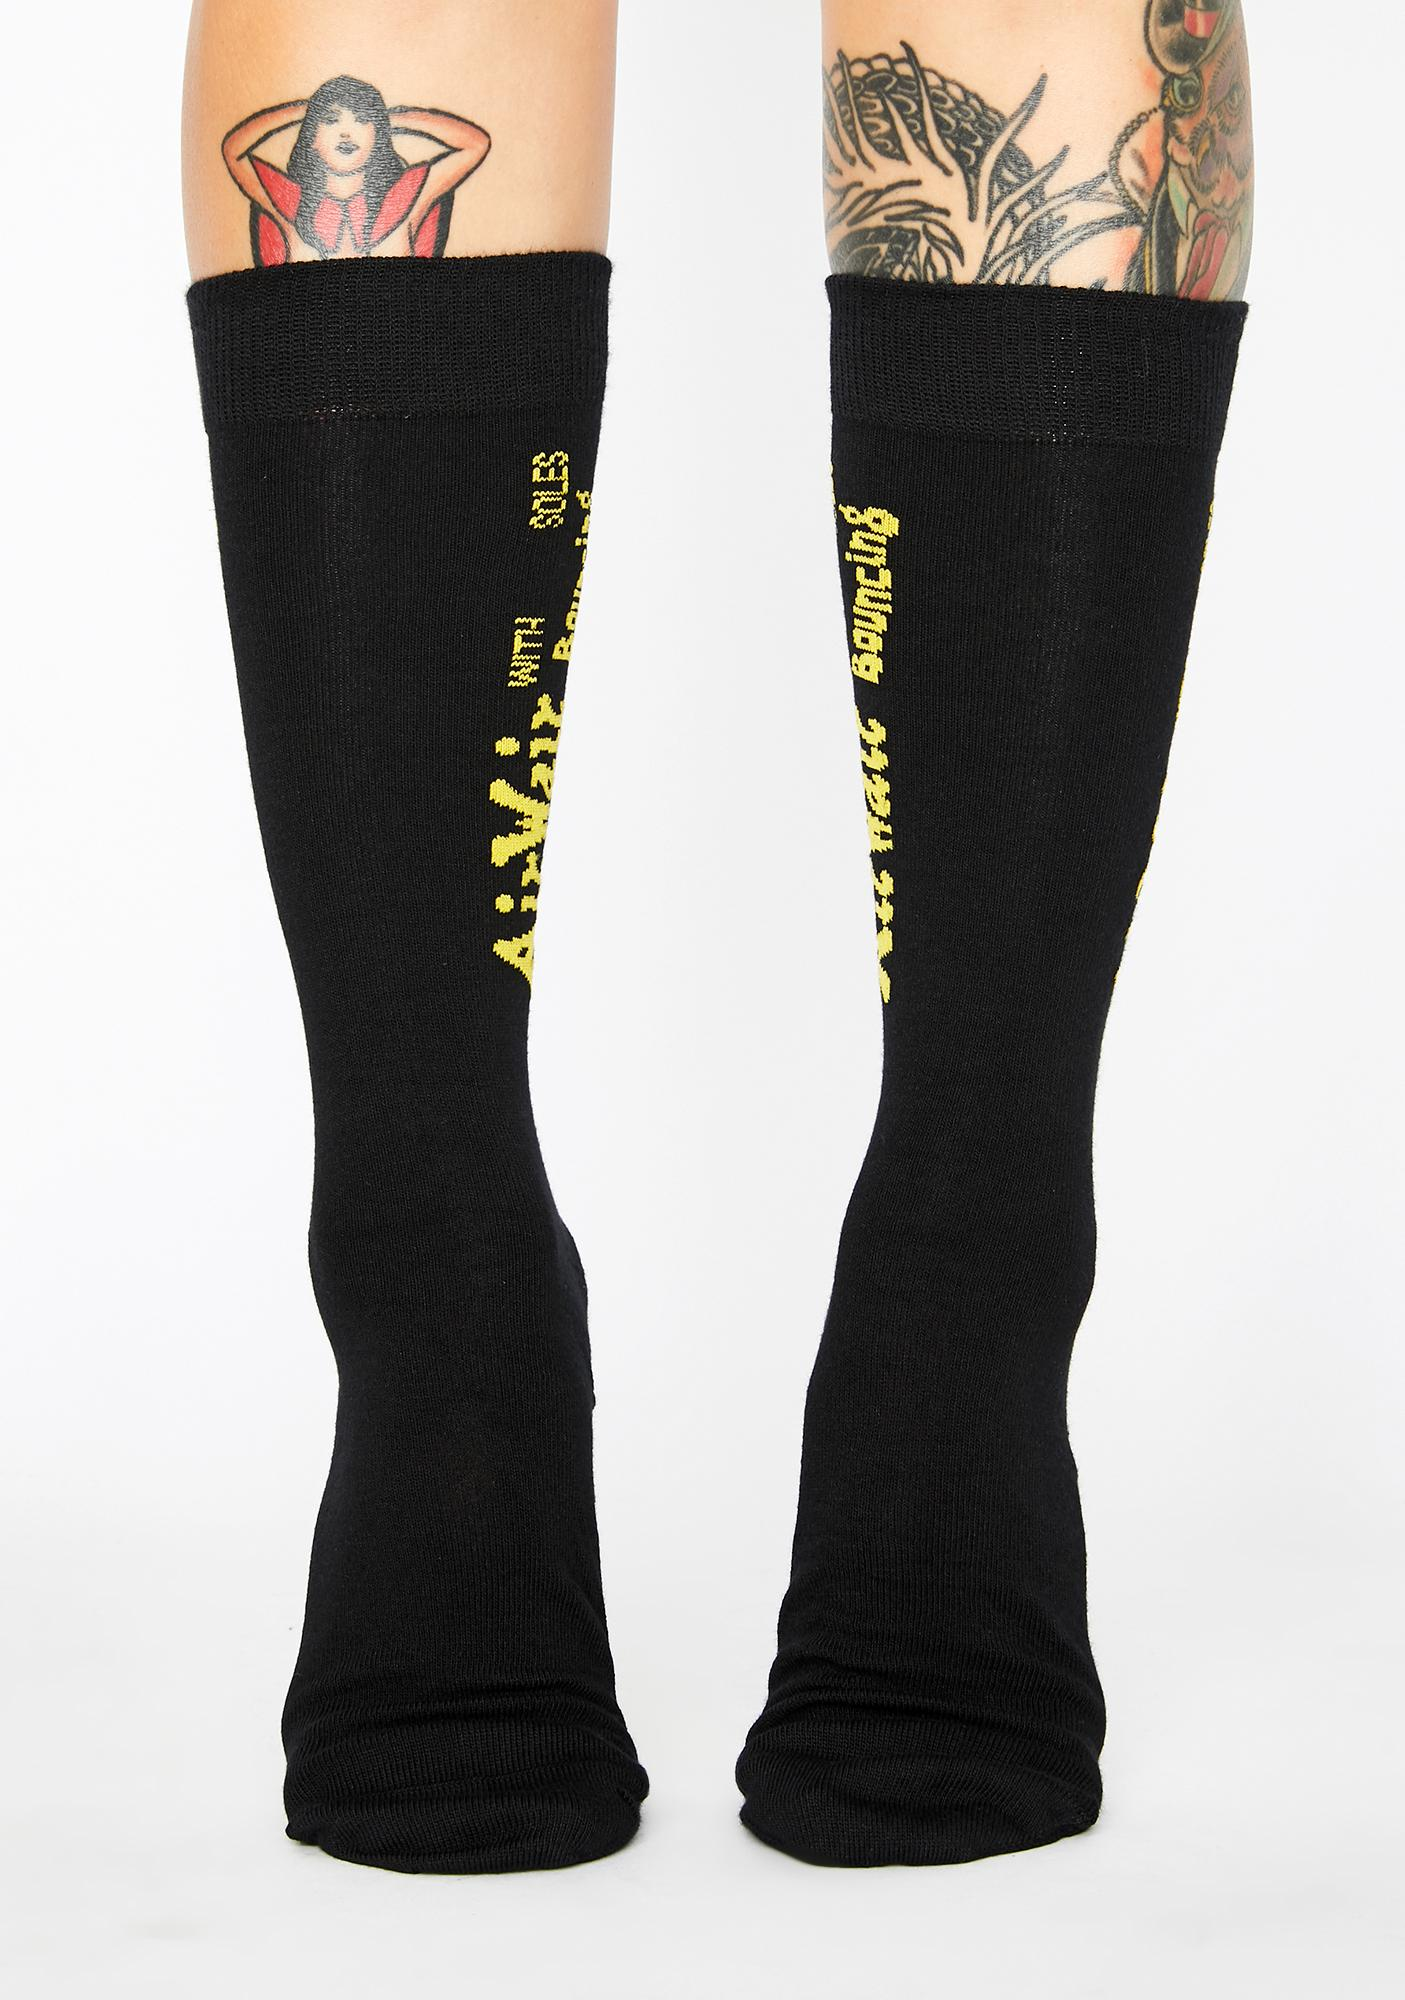 Dr. Martens DNA Heel Loop Socks